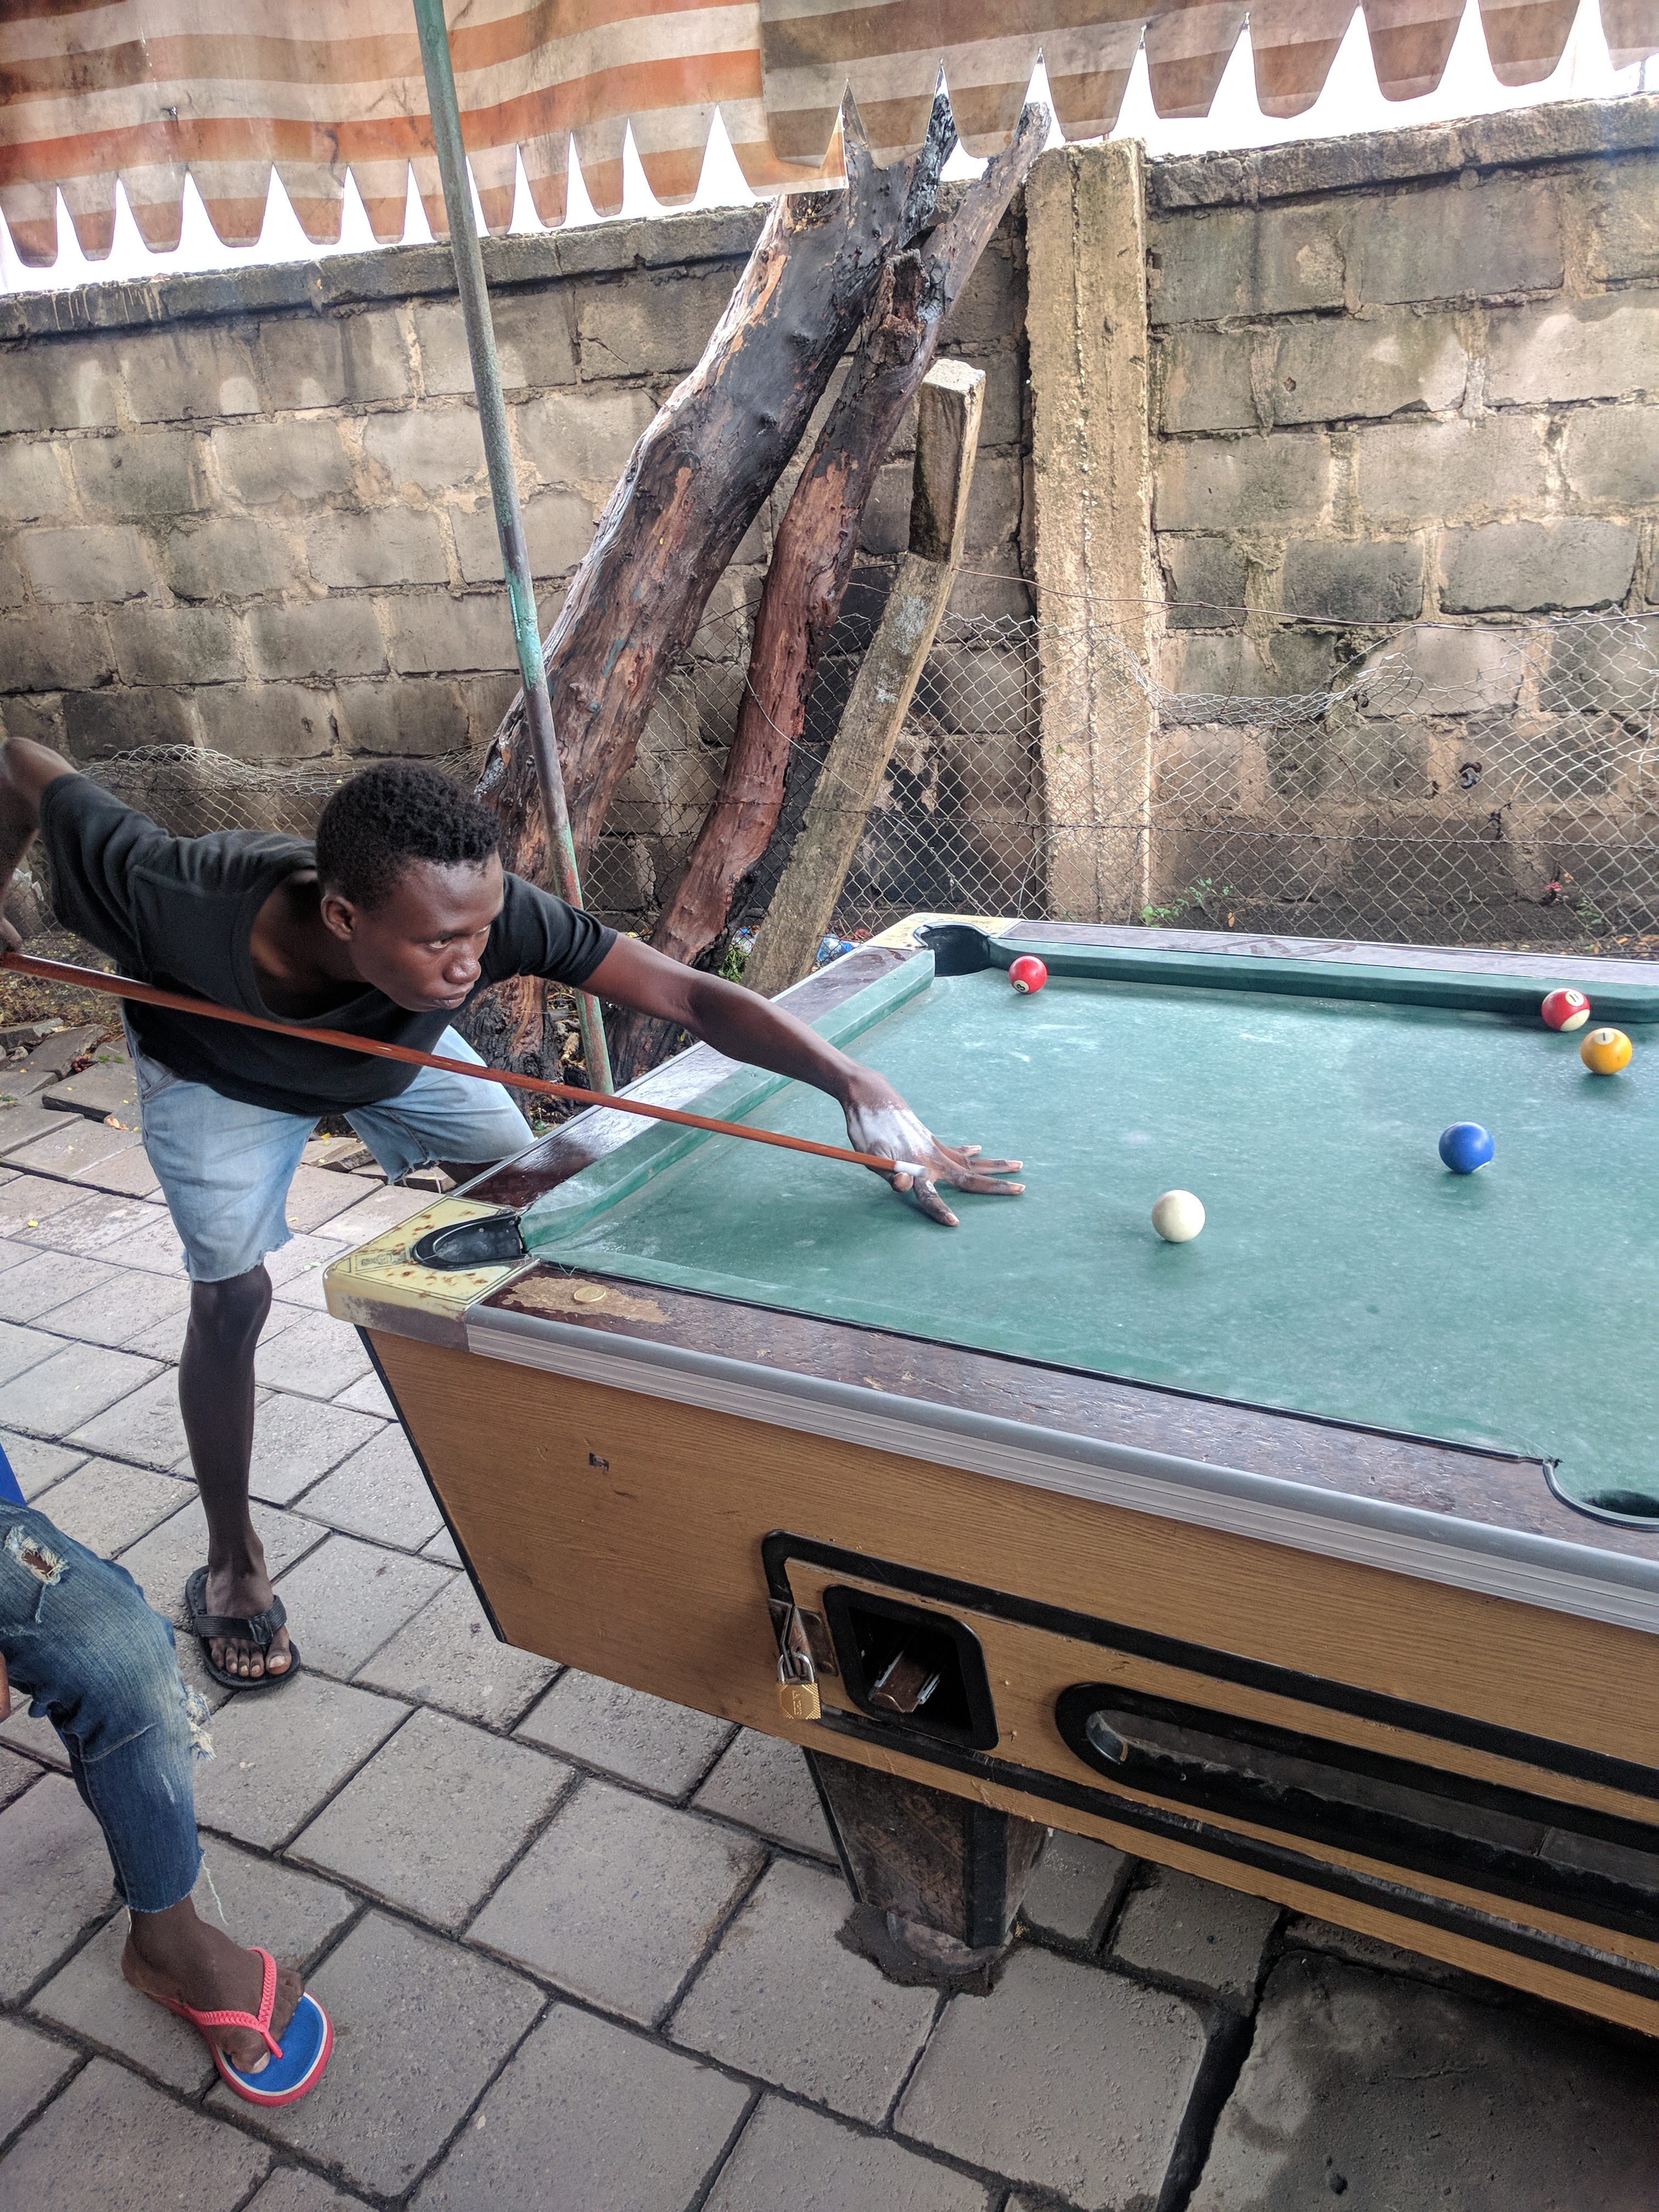 File:Let's play snooker jpg - Wikimedia Commons